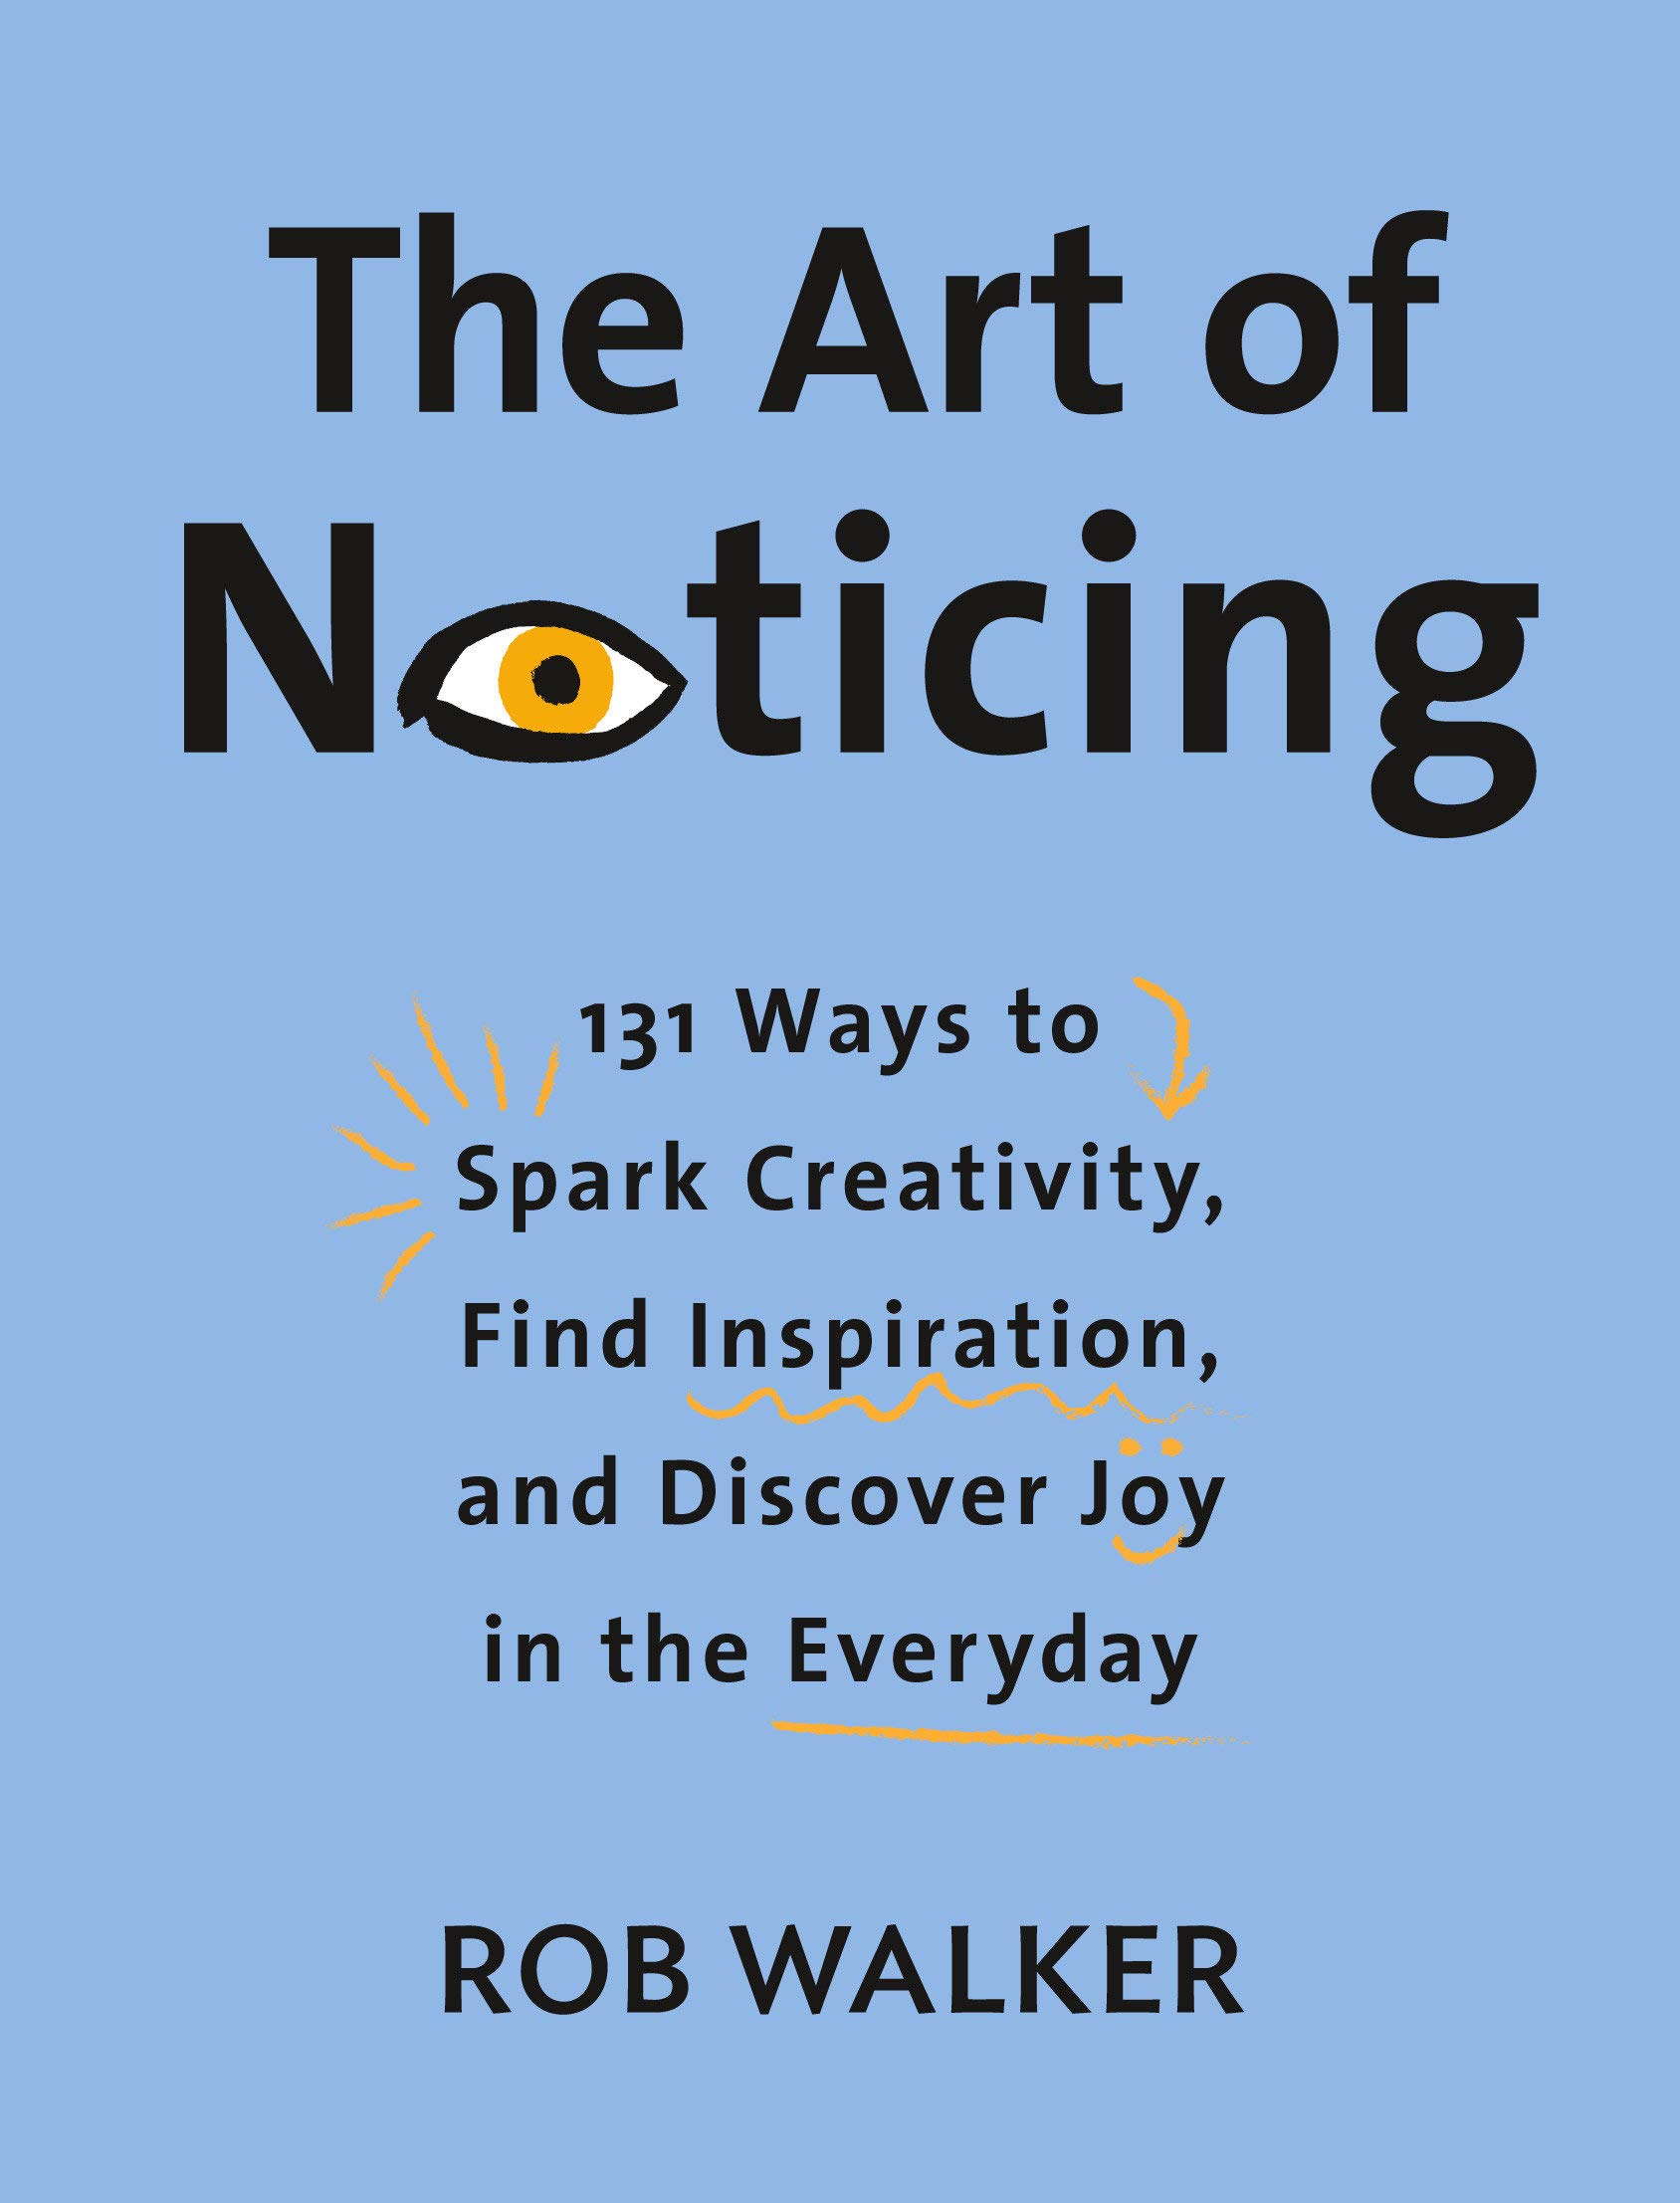 """""""The Art of noticing"""" book cover by Rob Walker."""